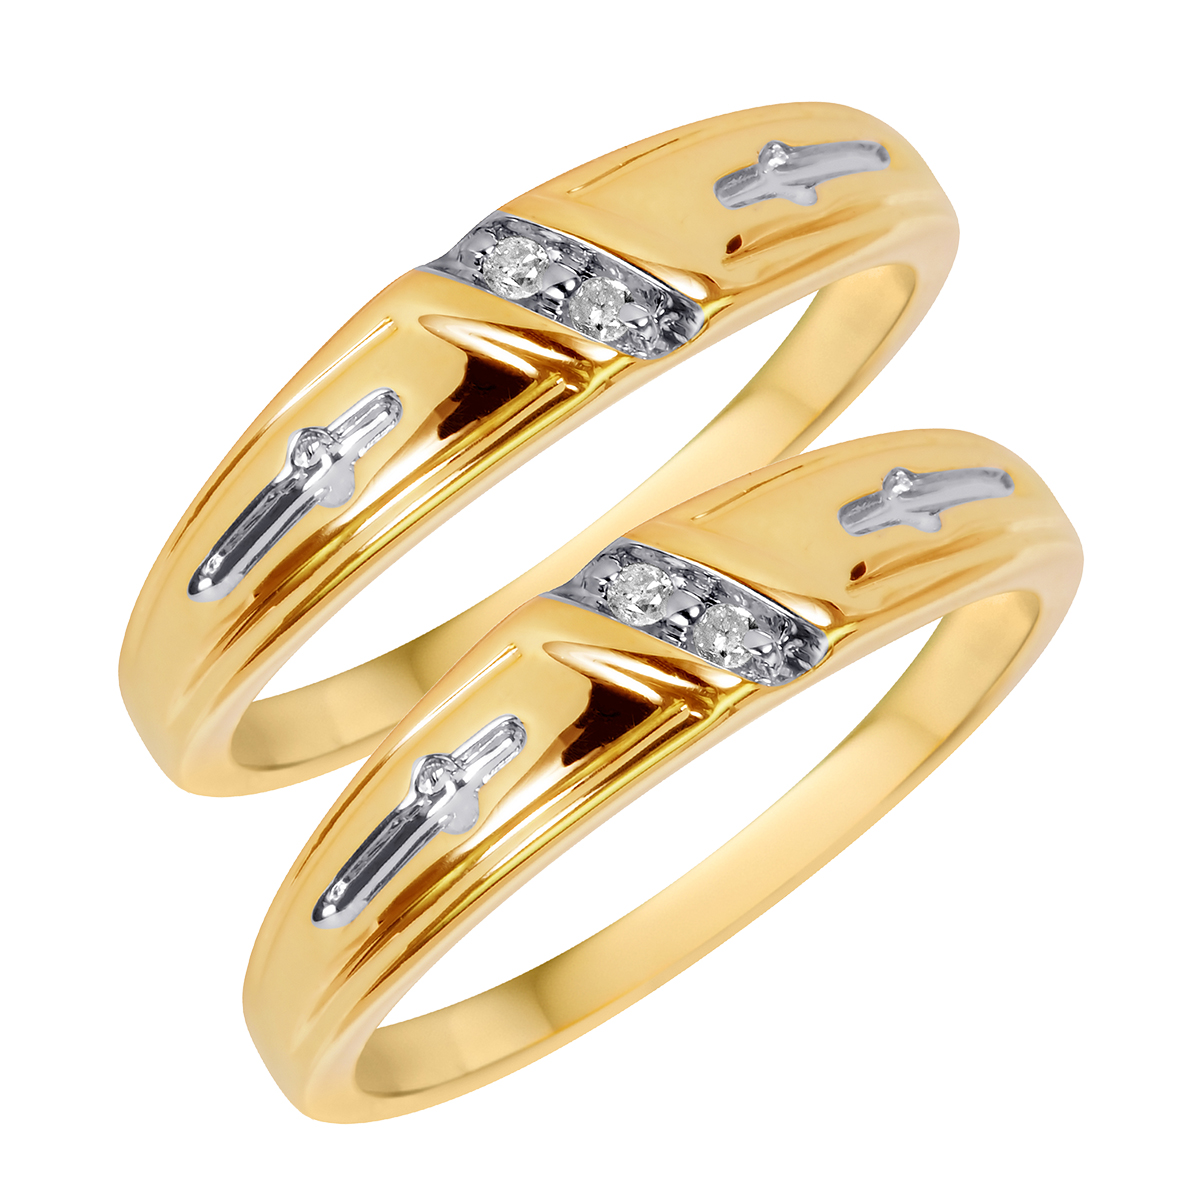 1/20 CT. T.W. Round Cut Ladies Same Sex Wedding Band Set 10K Yellow Gold- Size 8